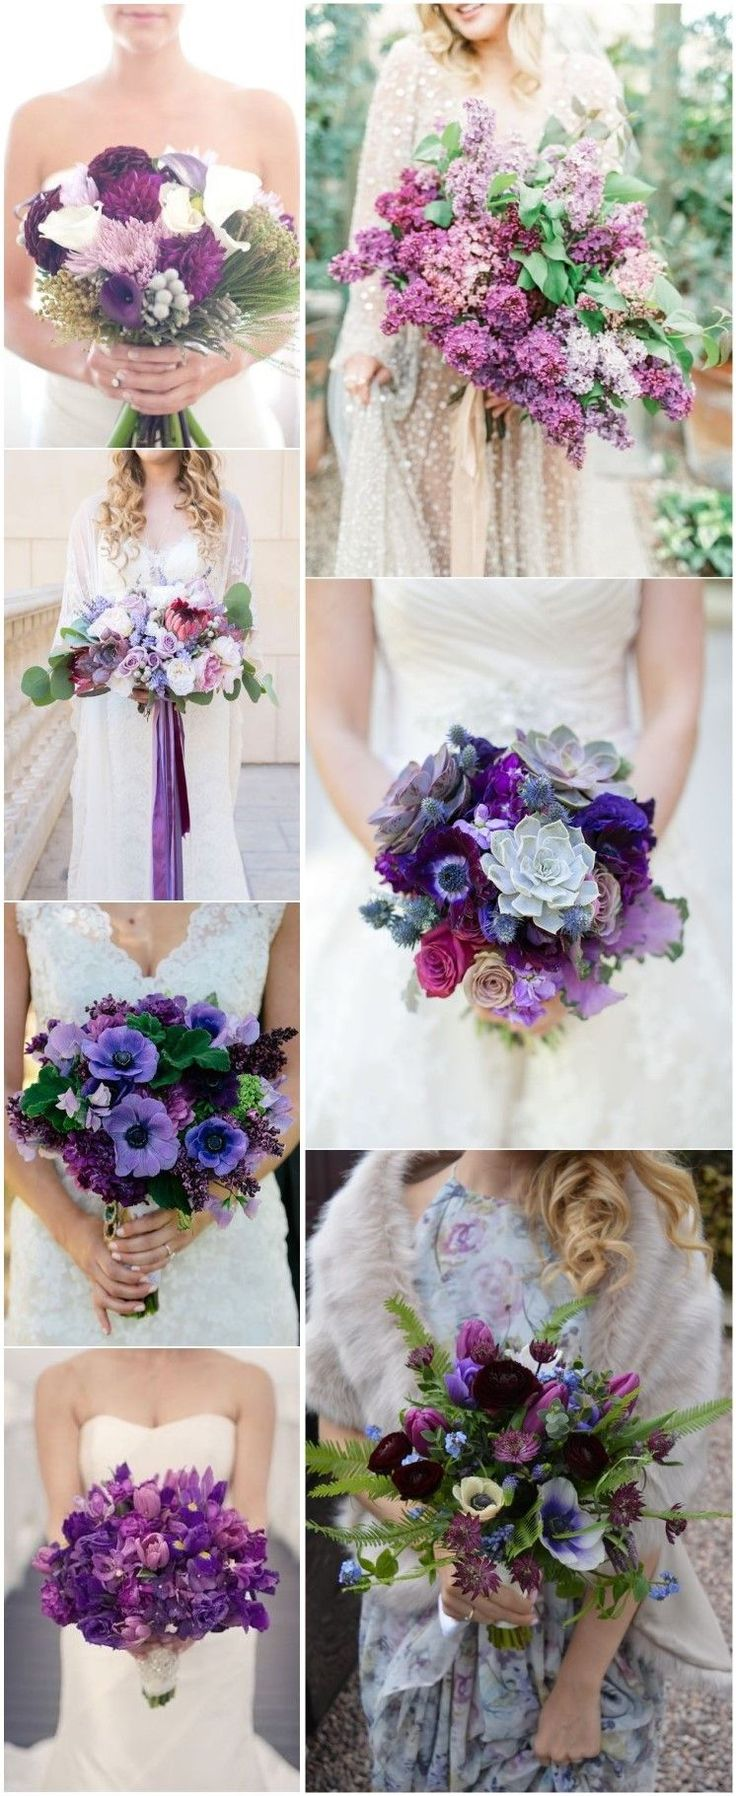 Color Of the Year 2018 - 20 Ultra Violet Wedding Bouquet Ideas #wedding #bouquet #WeddingIdeasBlue